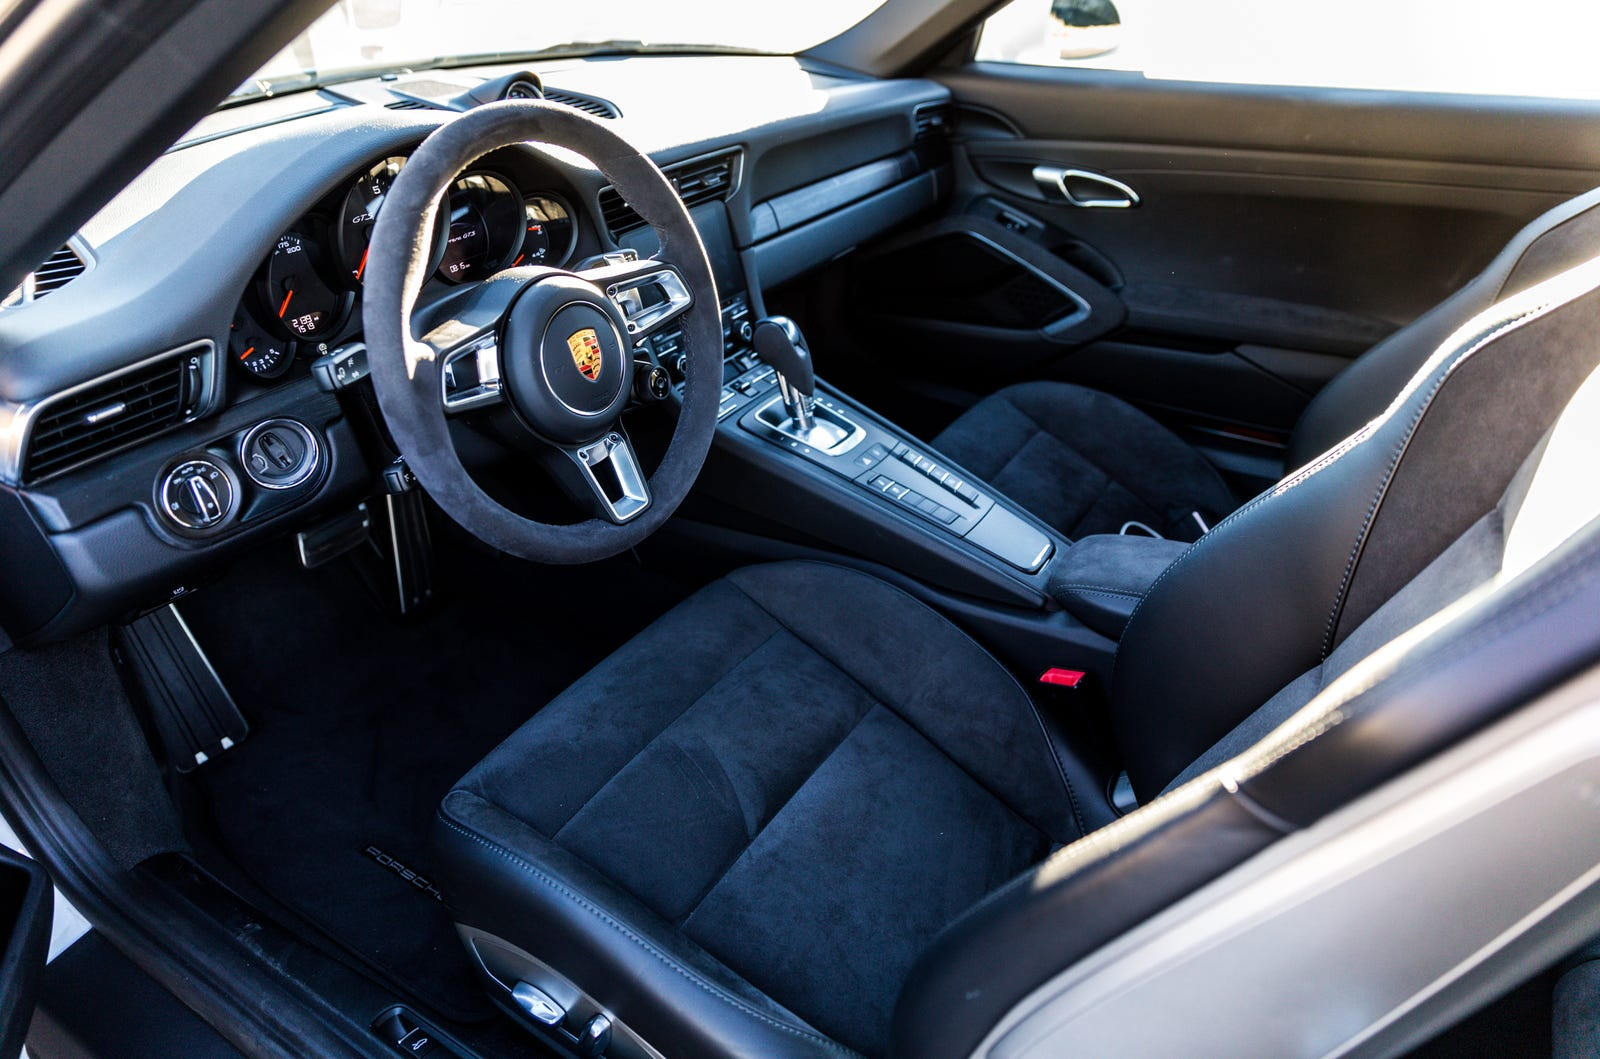 The 2019 Porsche 911 GTS Is So Good It Makes Me Hate What I've Become